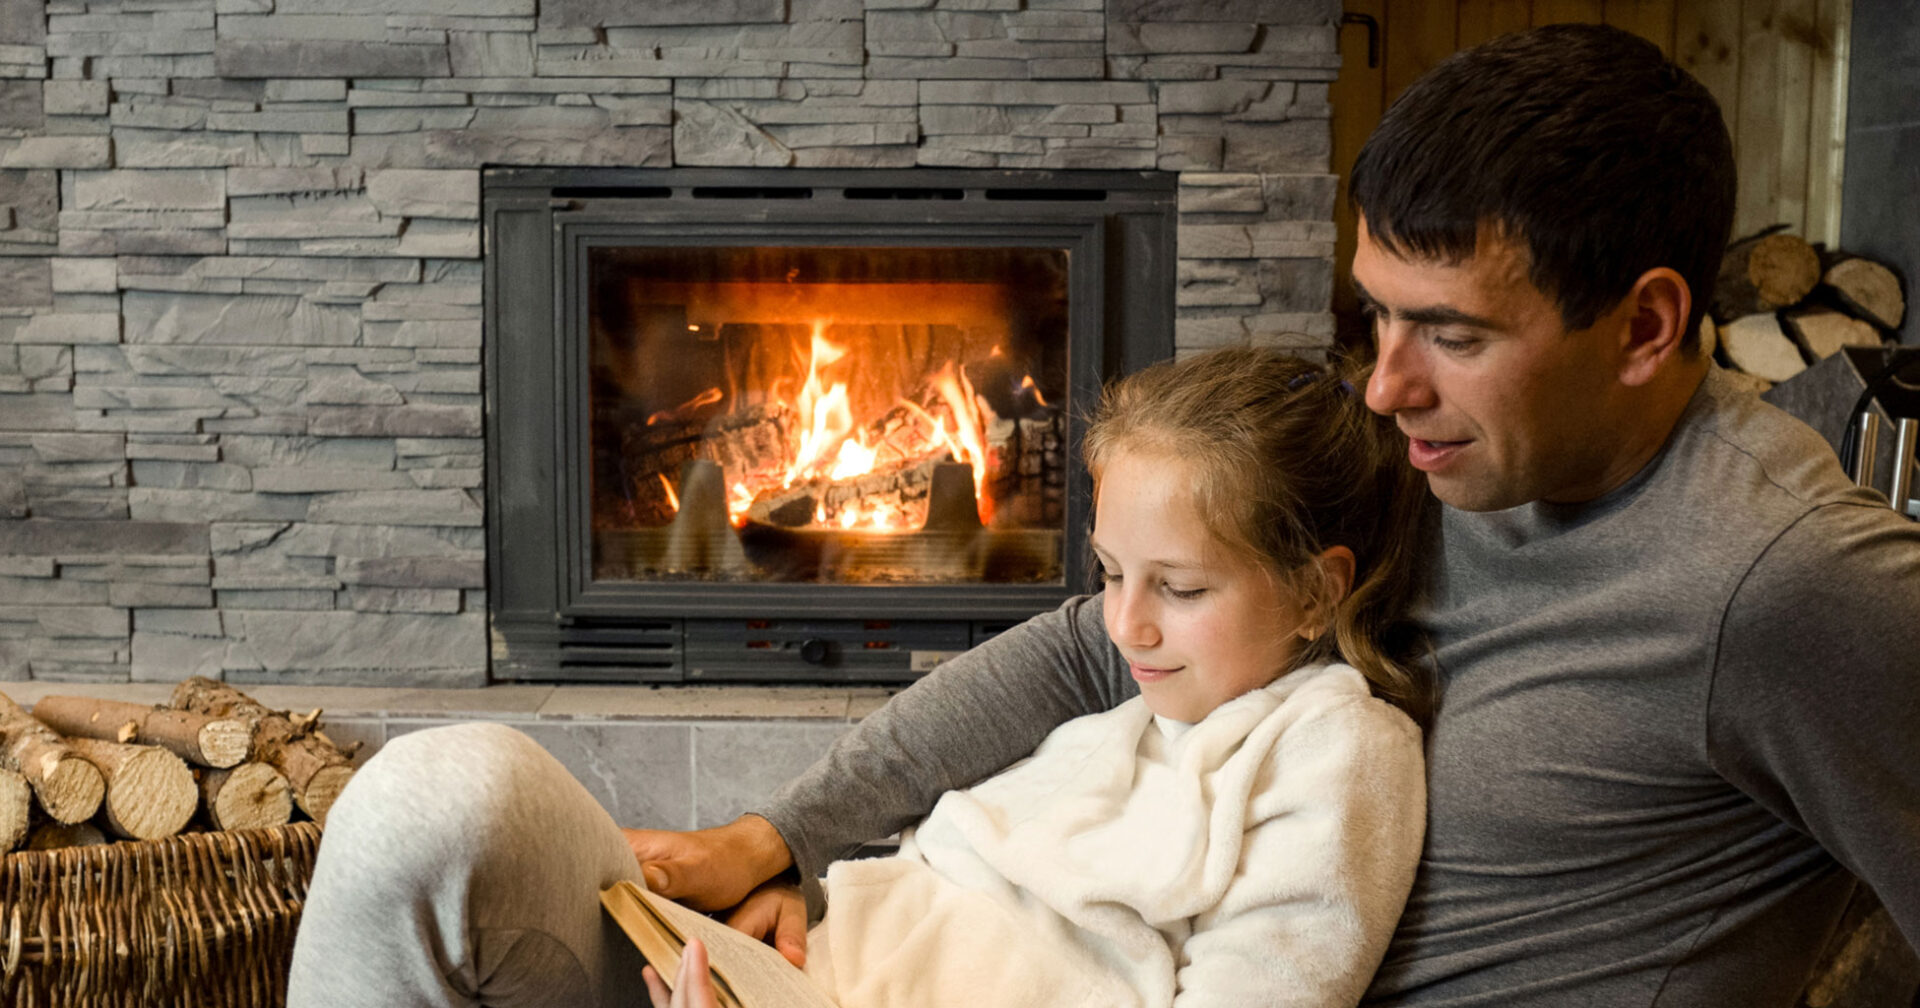 father and daughter in front of a fireplace